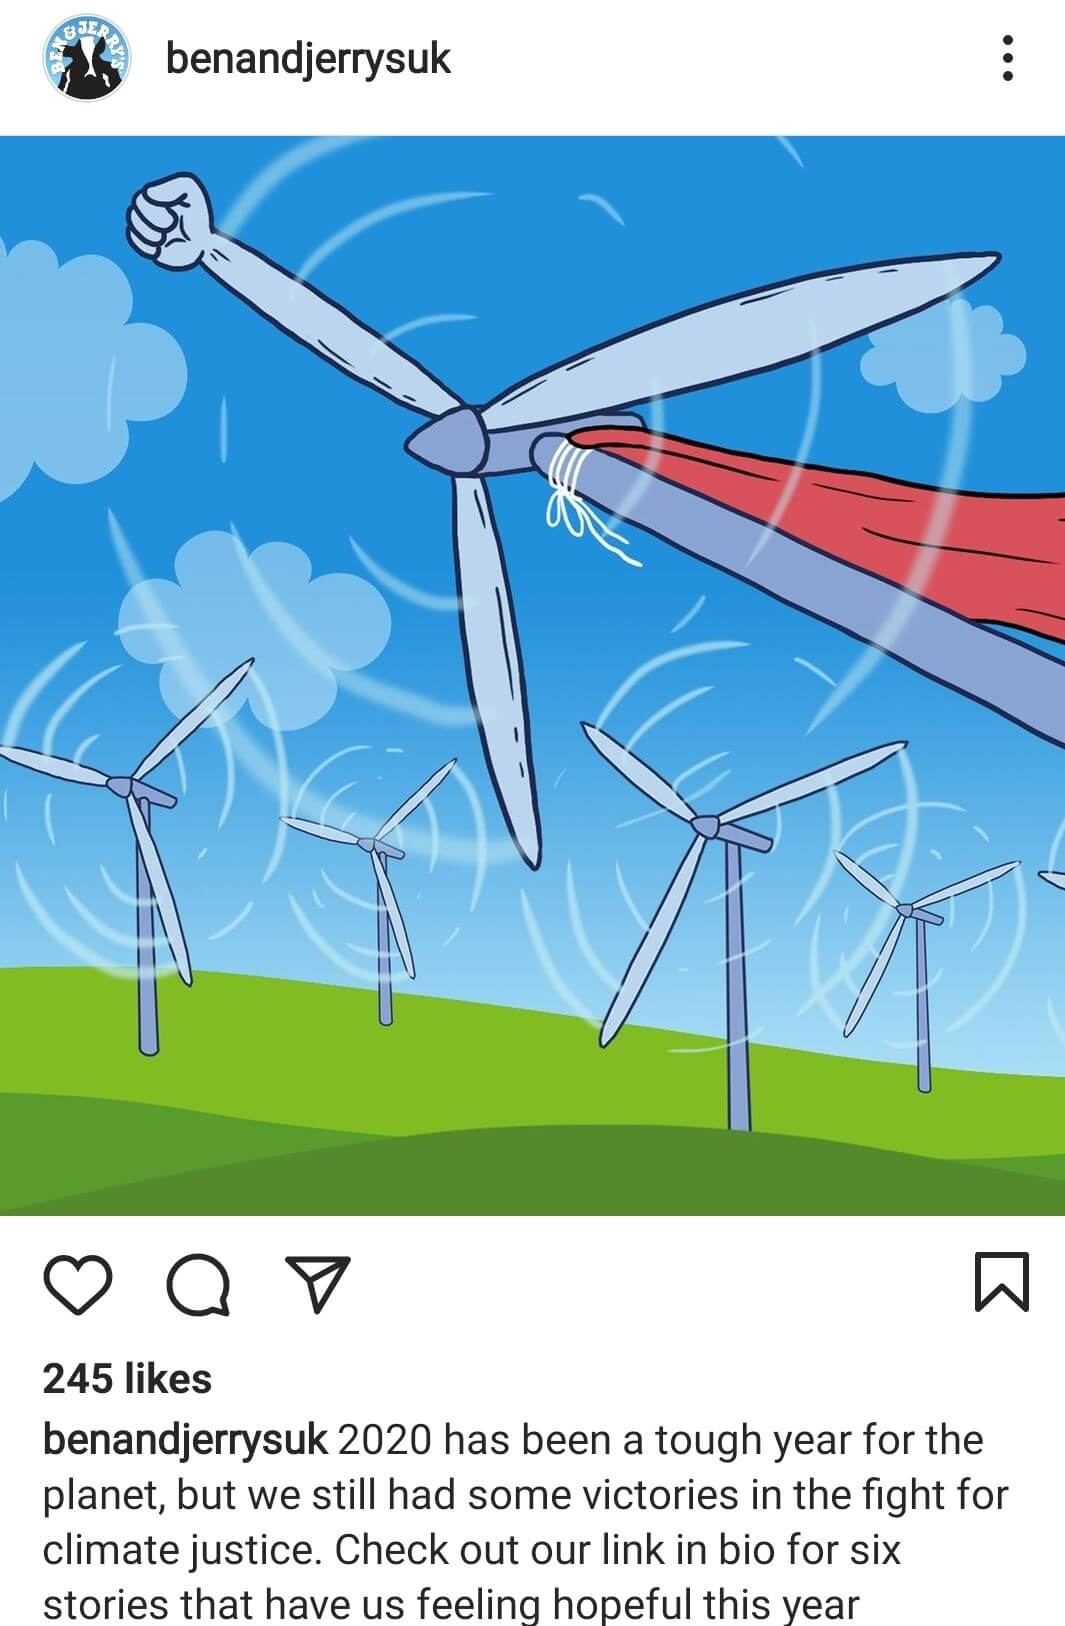 Instagram for Business: Ben and Jerry's